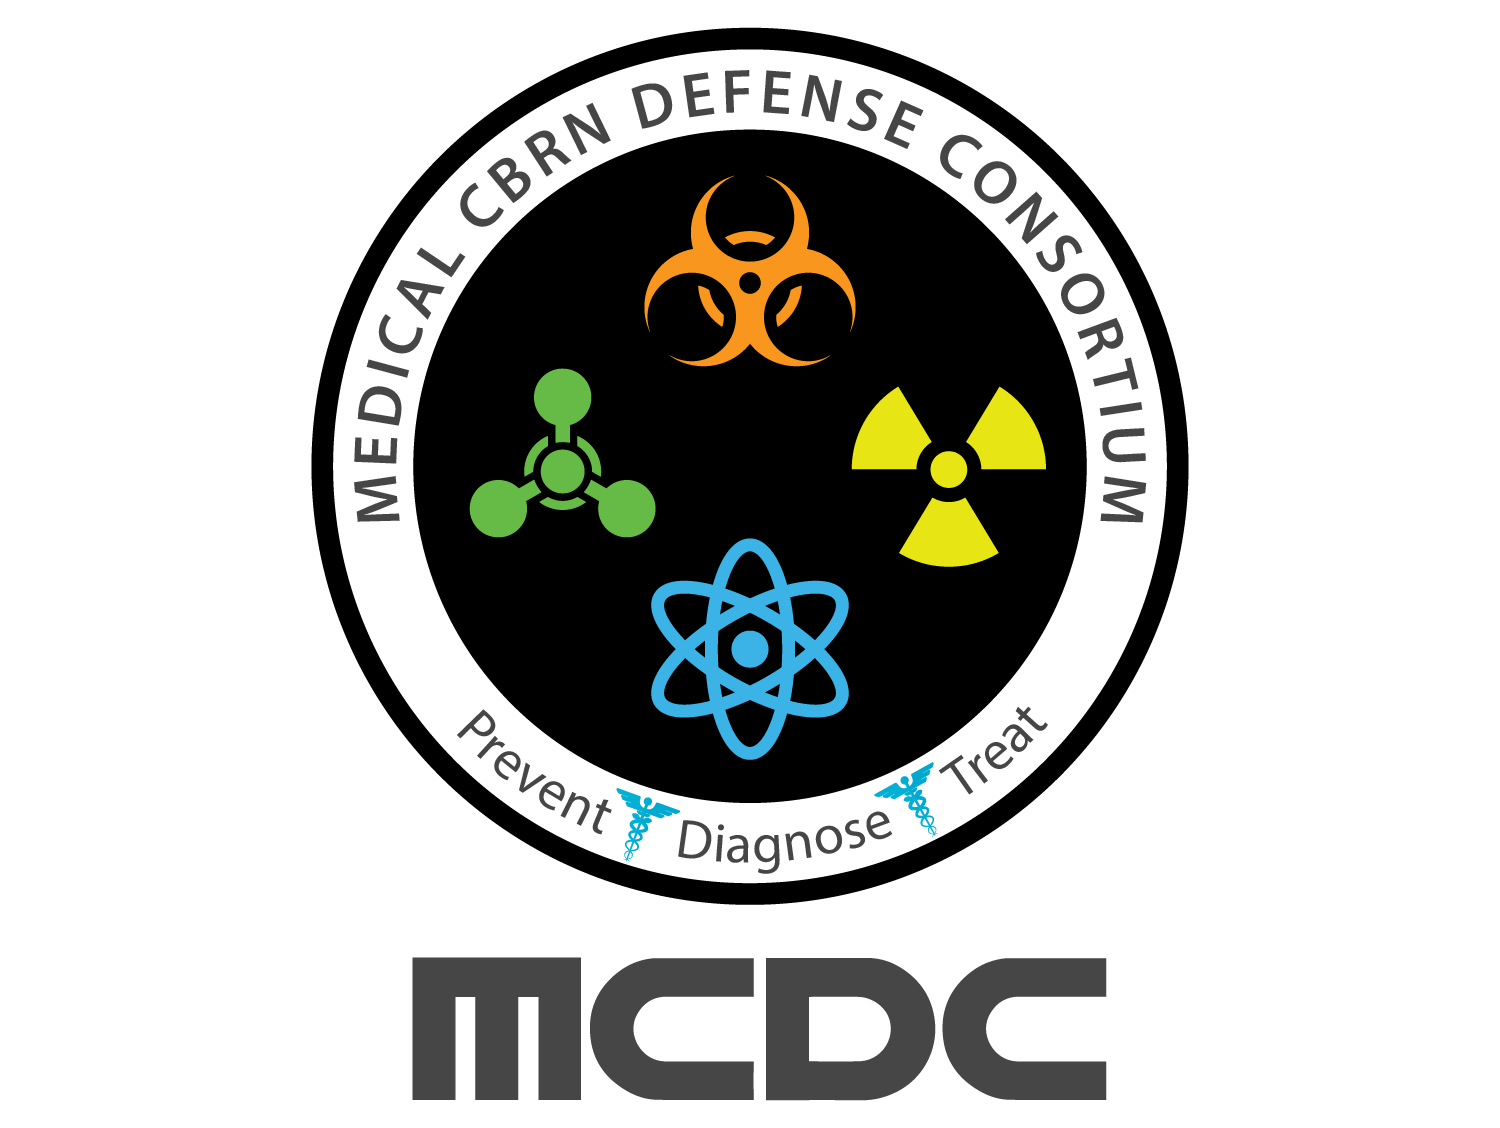 Medical CBRN defense consortium logo